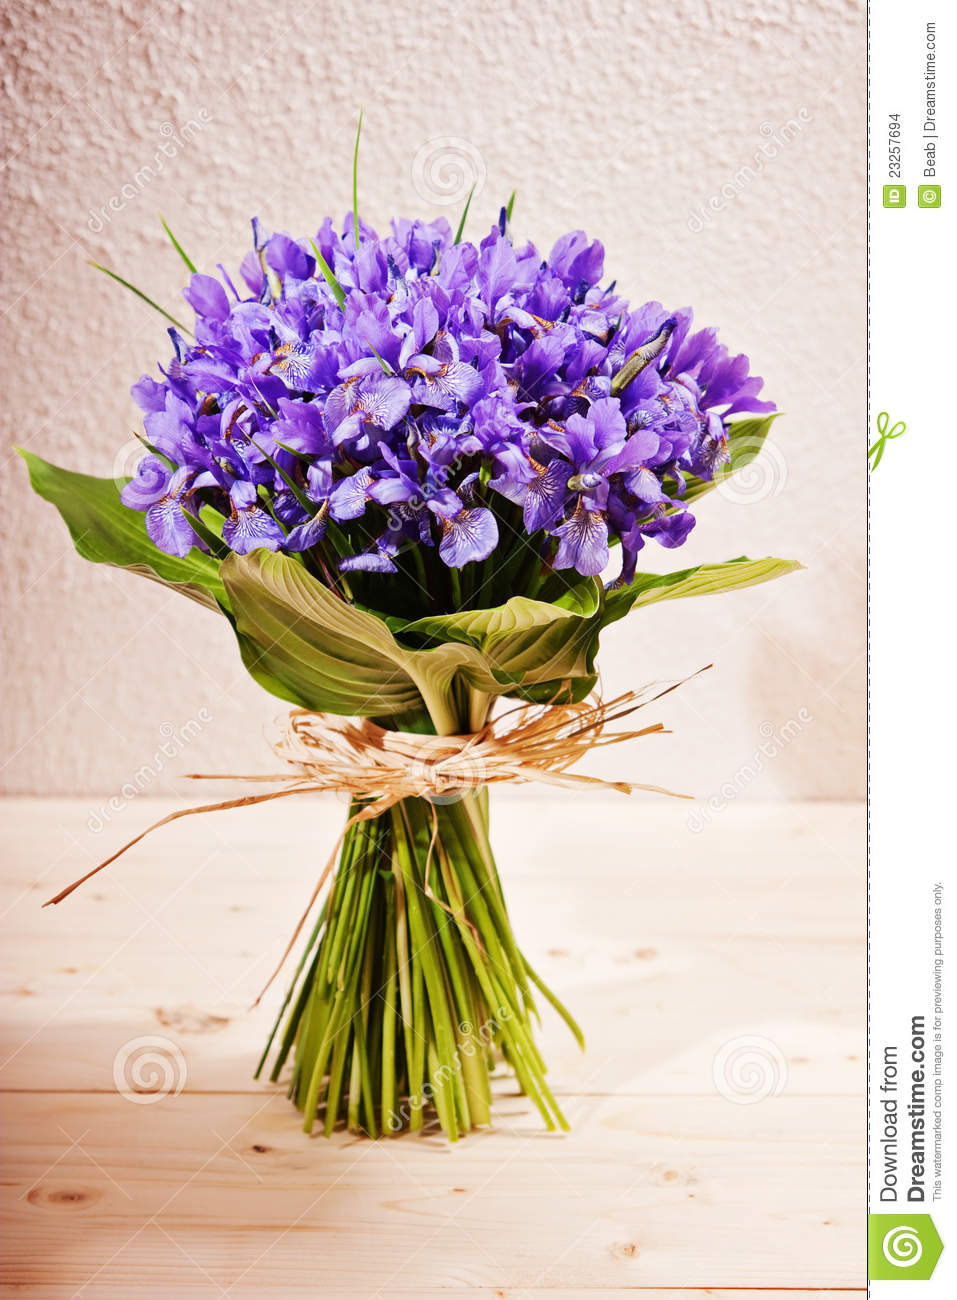 Gut gemocht Bouquet of flowers iris stock photo. Image of bouquet - 23257694 XD53